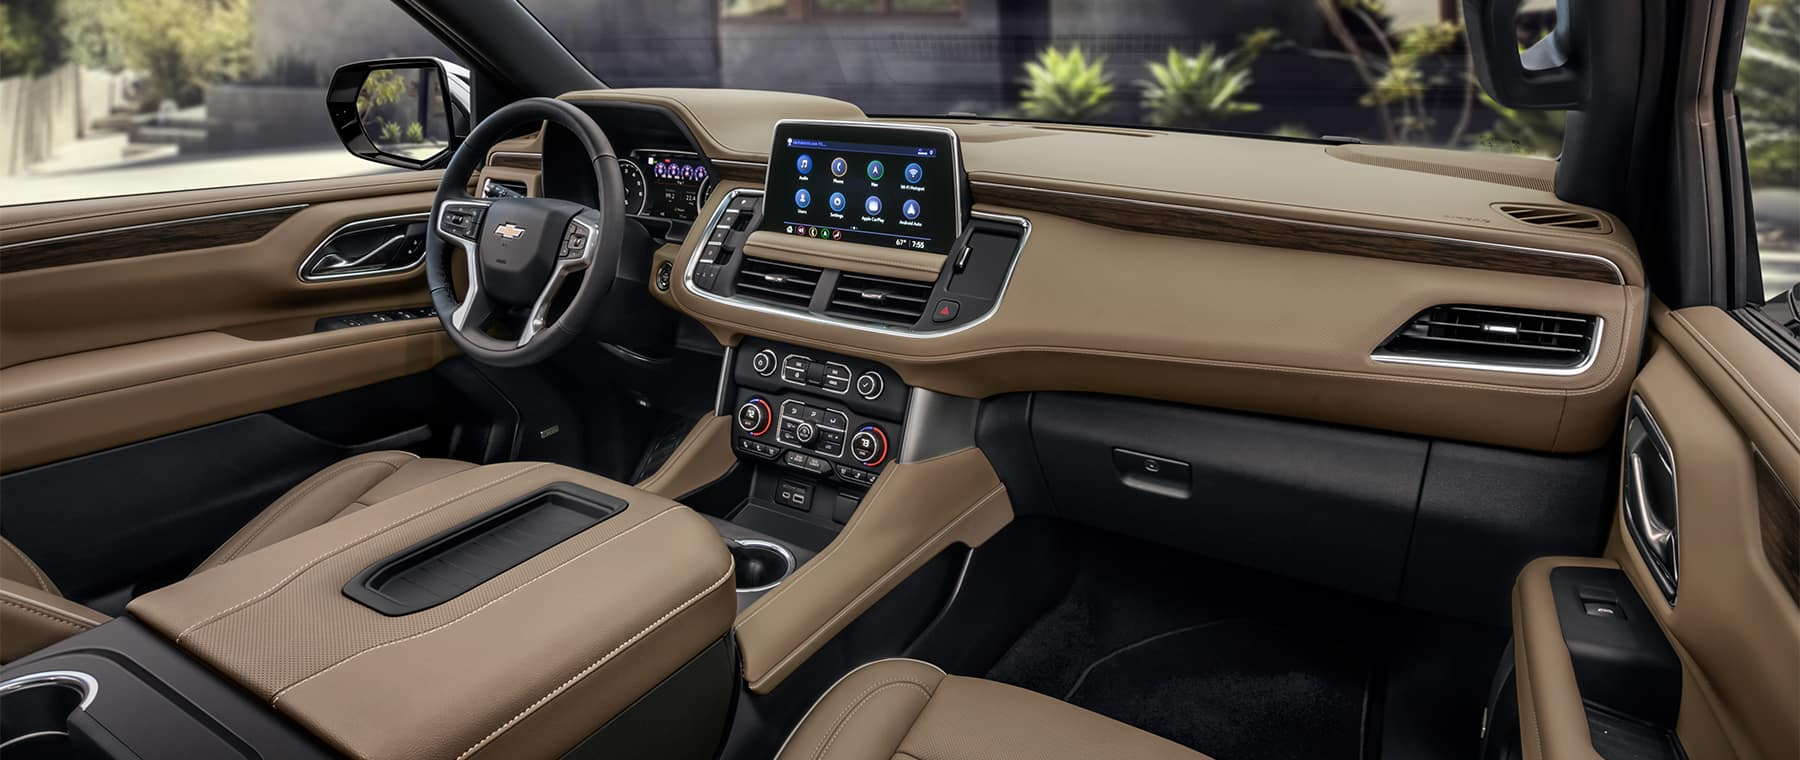 2021 Chevrolet Suburban interior dash board